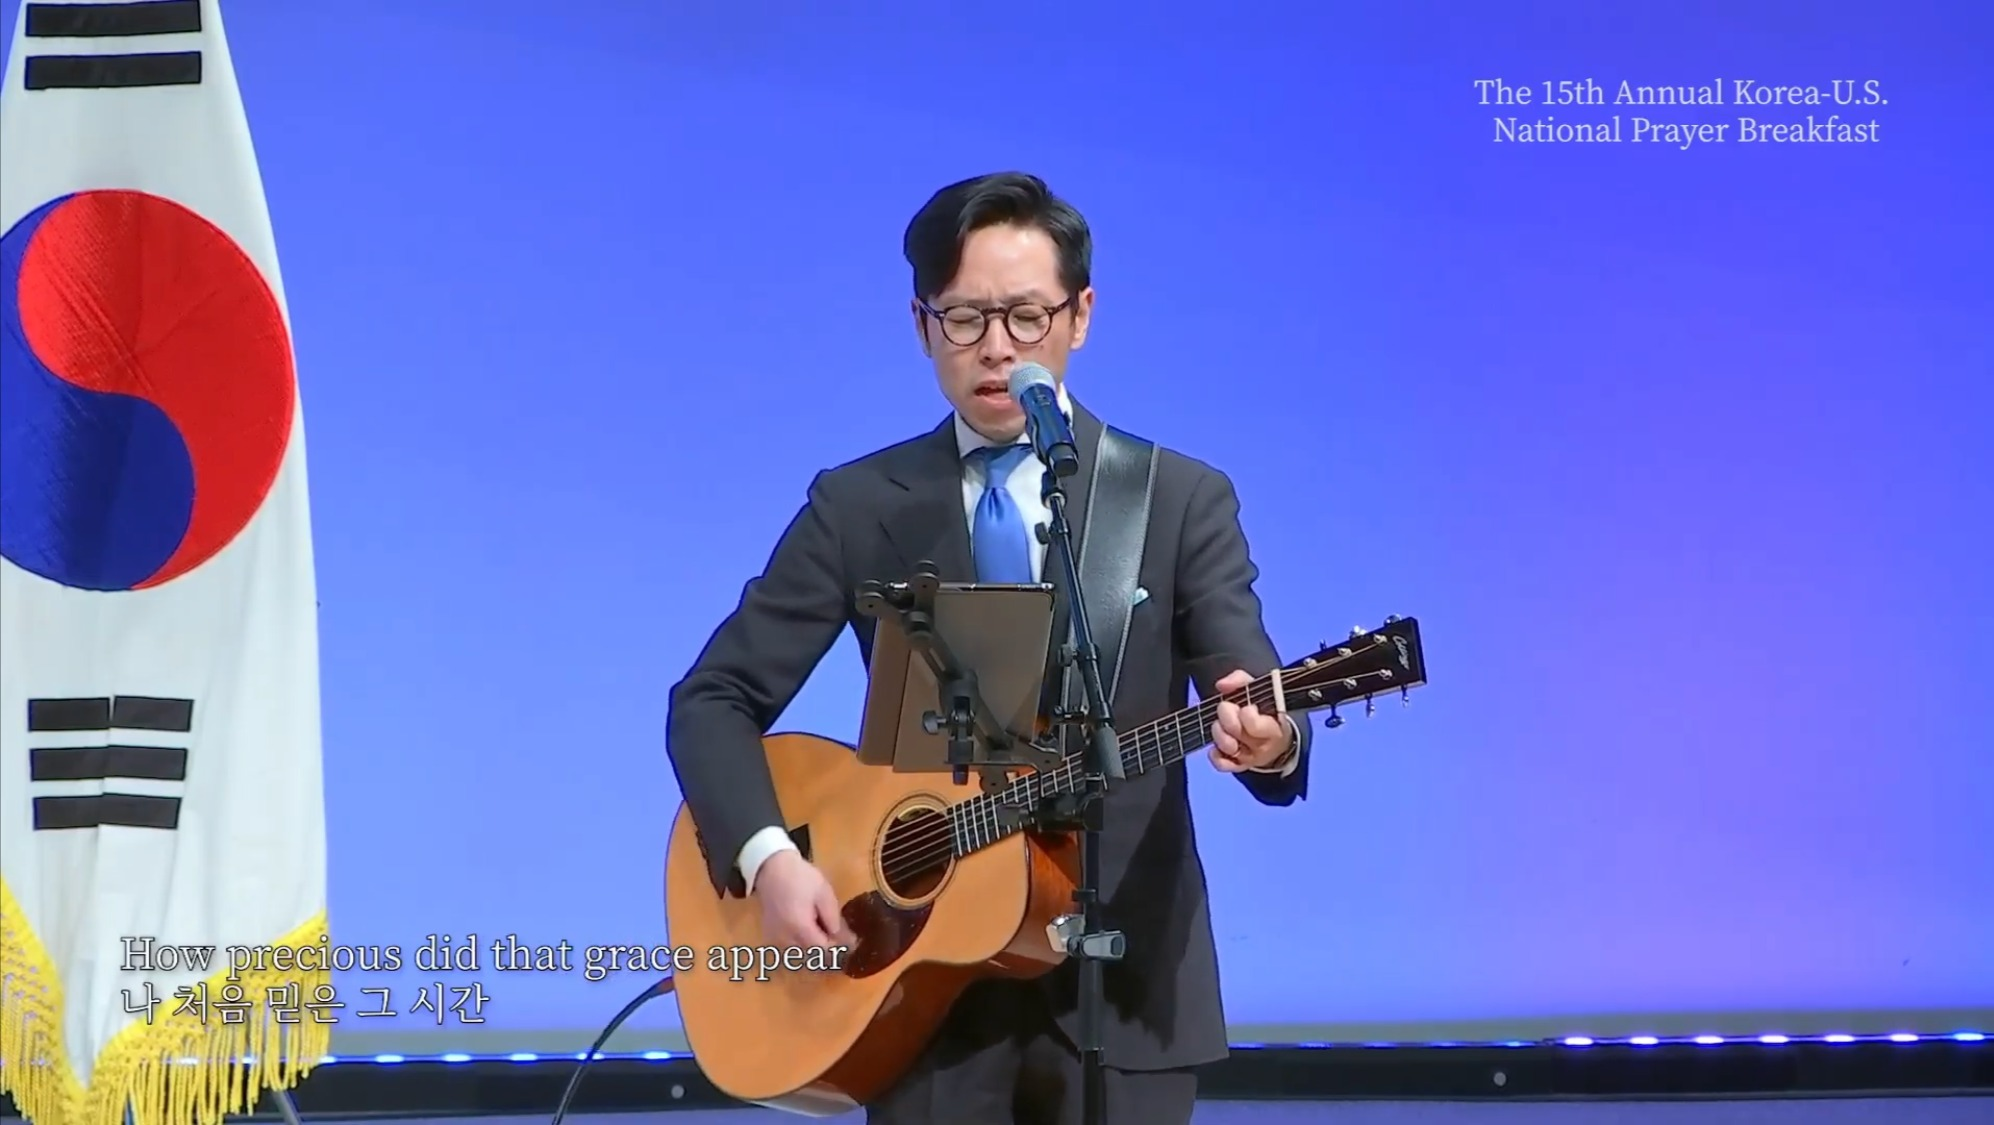 The 15th Annual Korea U.S. National Prayer Breakfast